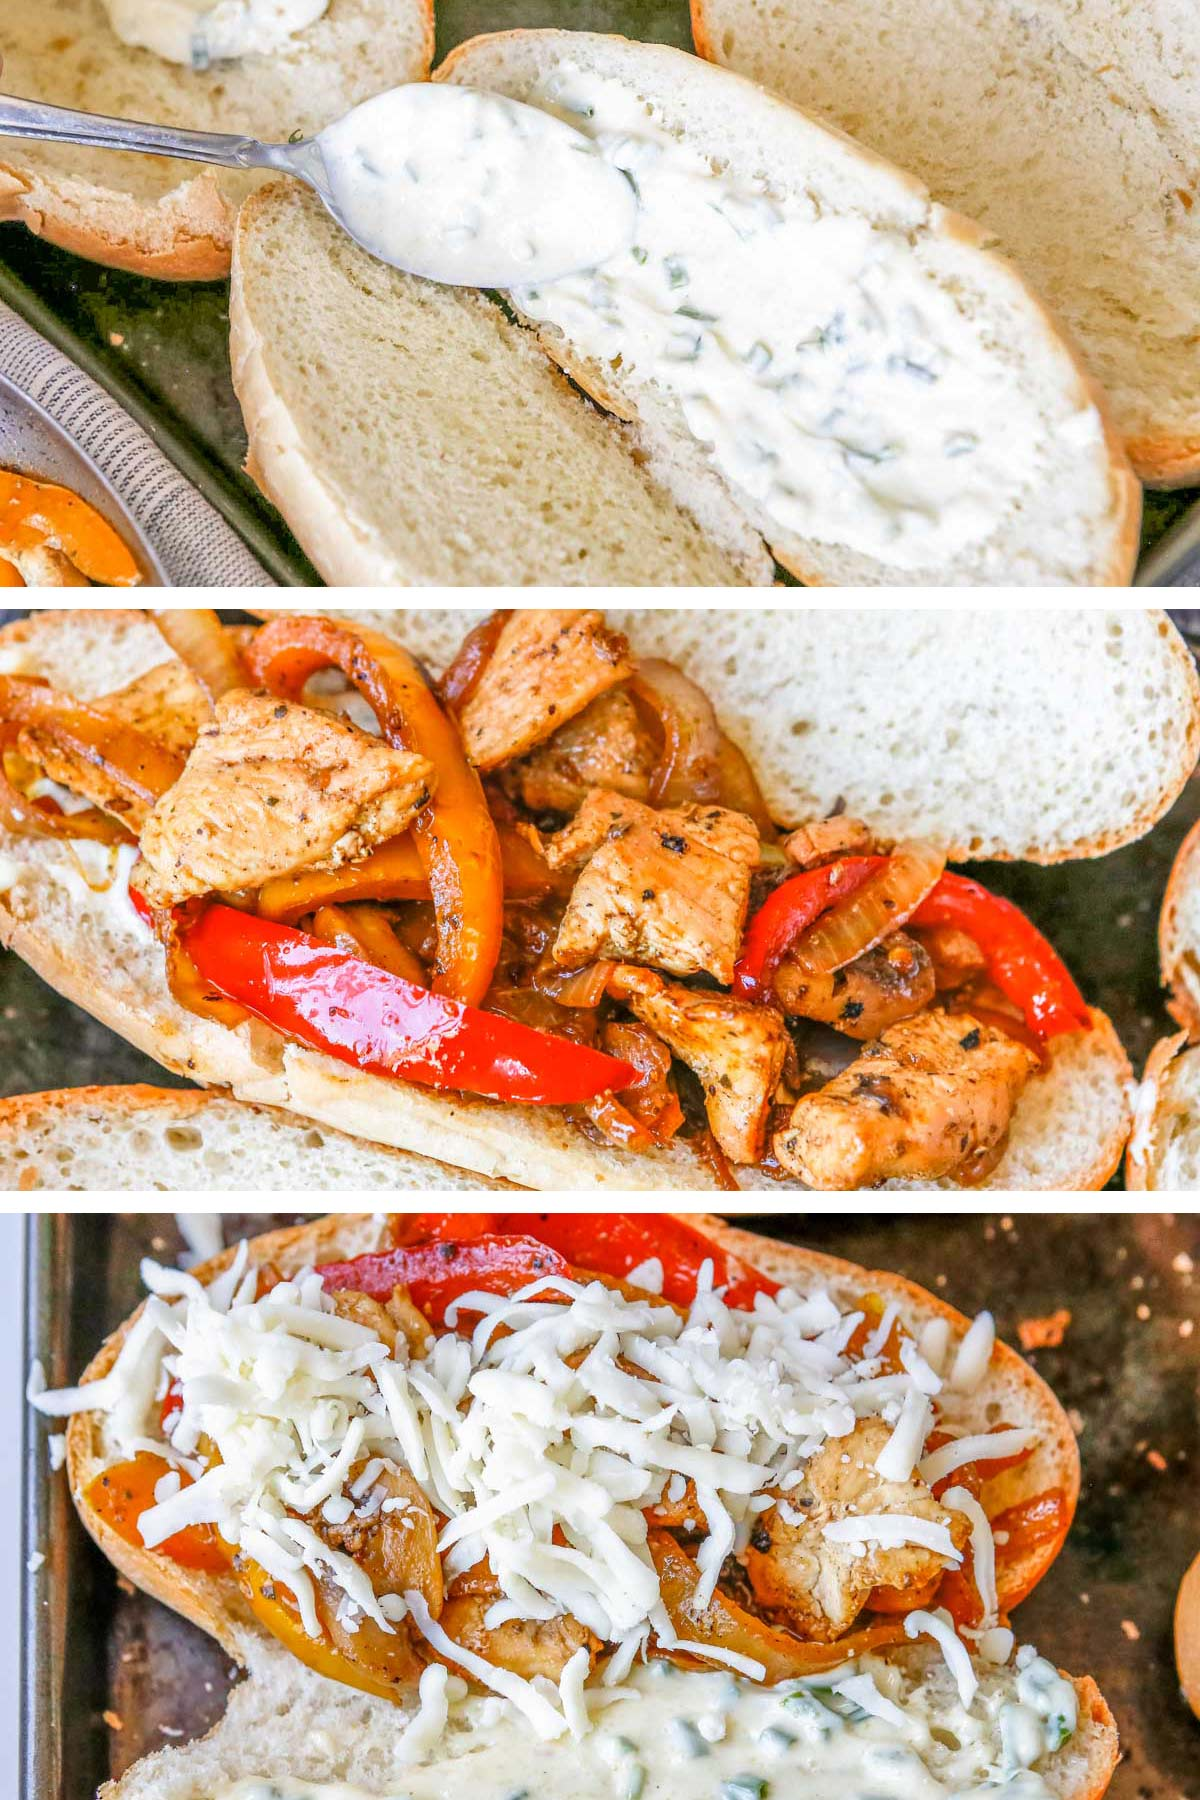 a collage of steps to assemble the sandwich: Smearing garlic aioli on a bun, topping bun with chicken and pepper mixture and final photo showing bun and chicken topped with shredded cheese.